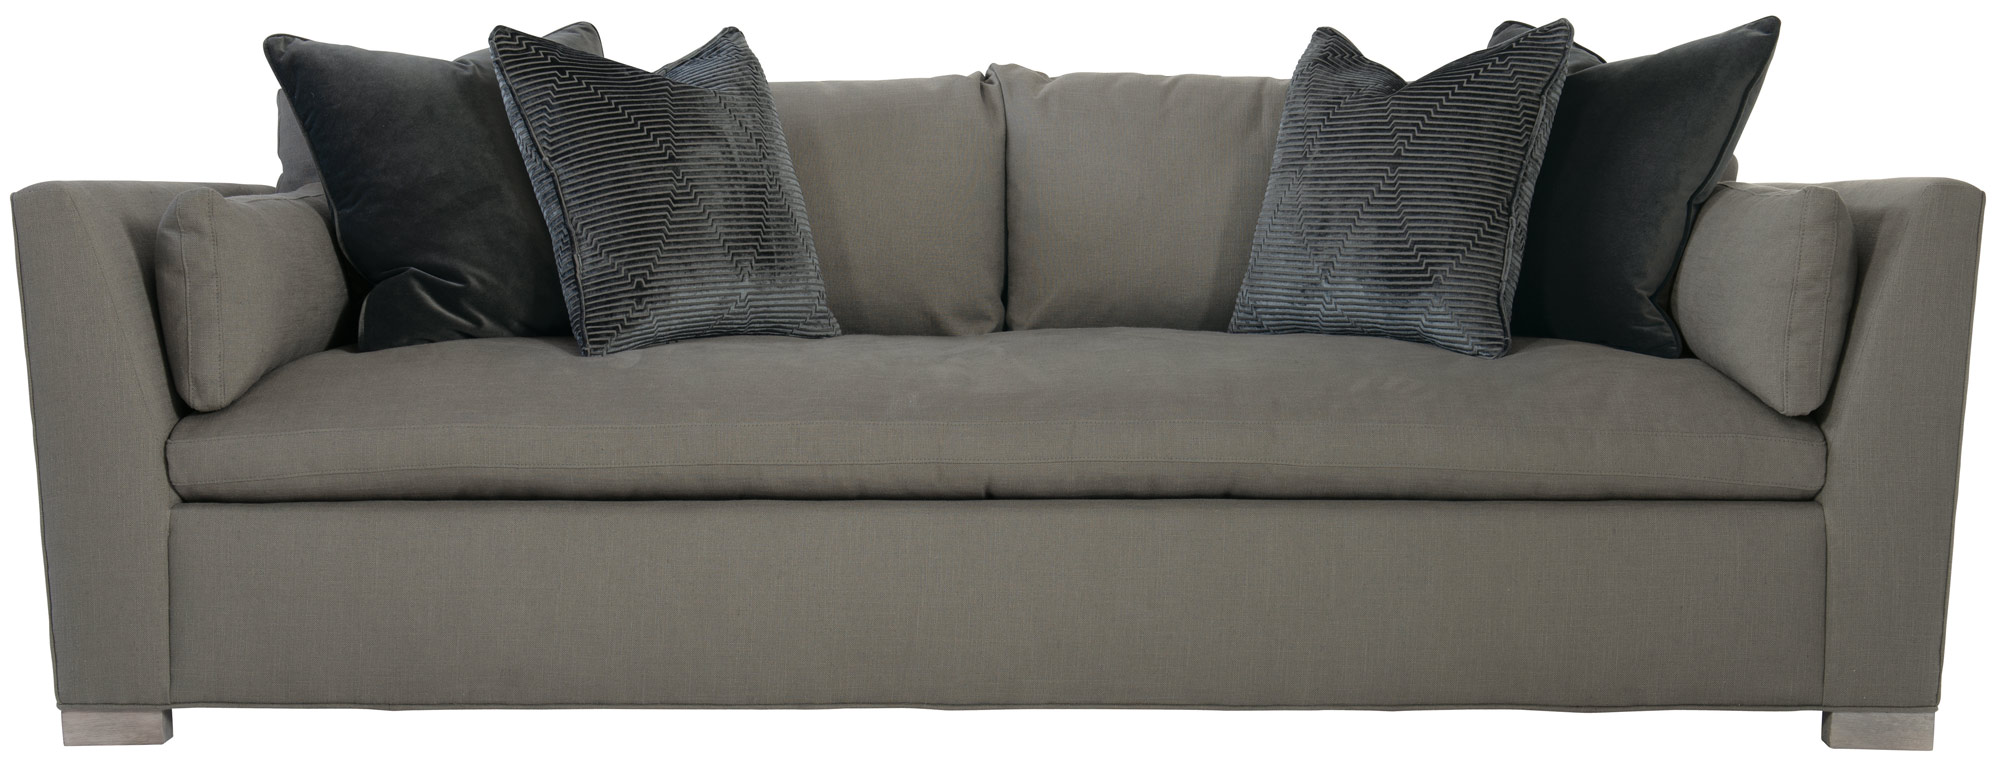 Miraculous Sofa Bench Set 96 Bernhardt Home Interior And Landscaping Ponolsignezvosmurscom